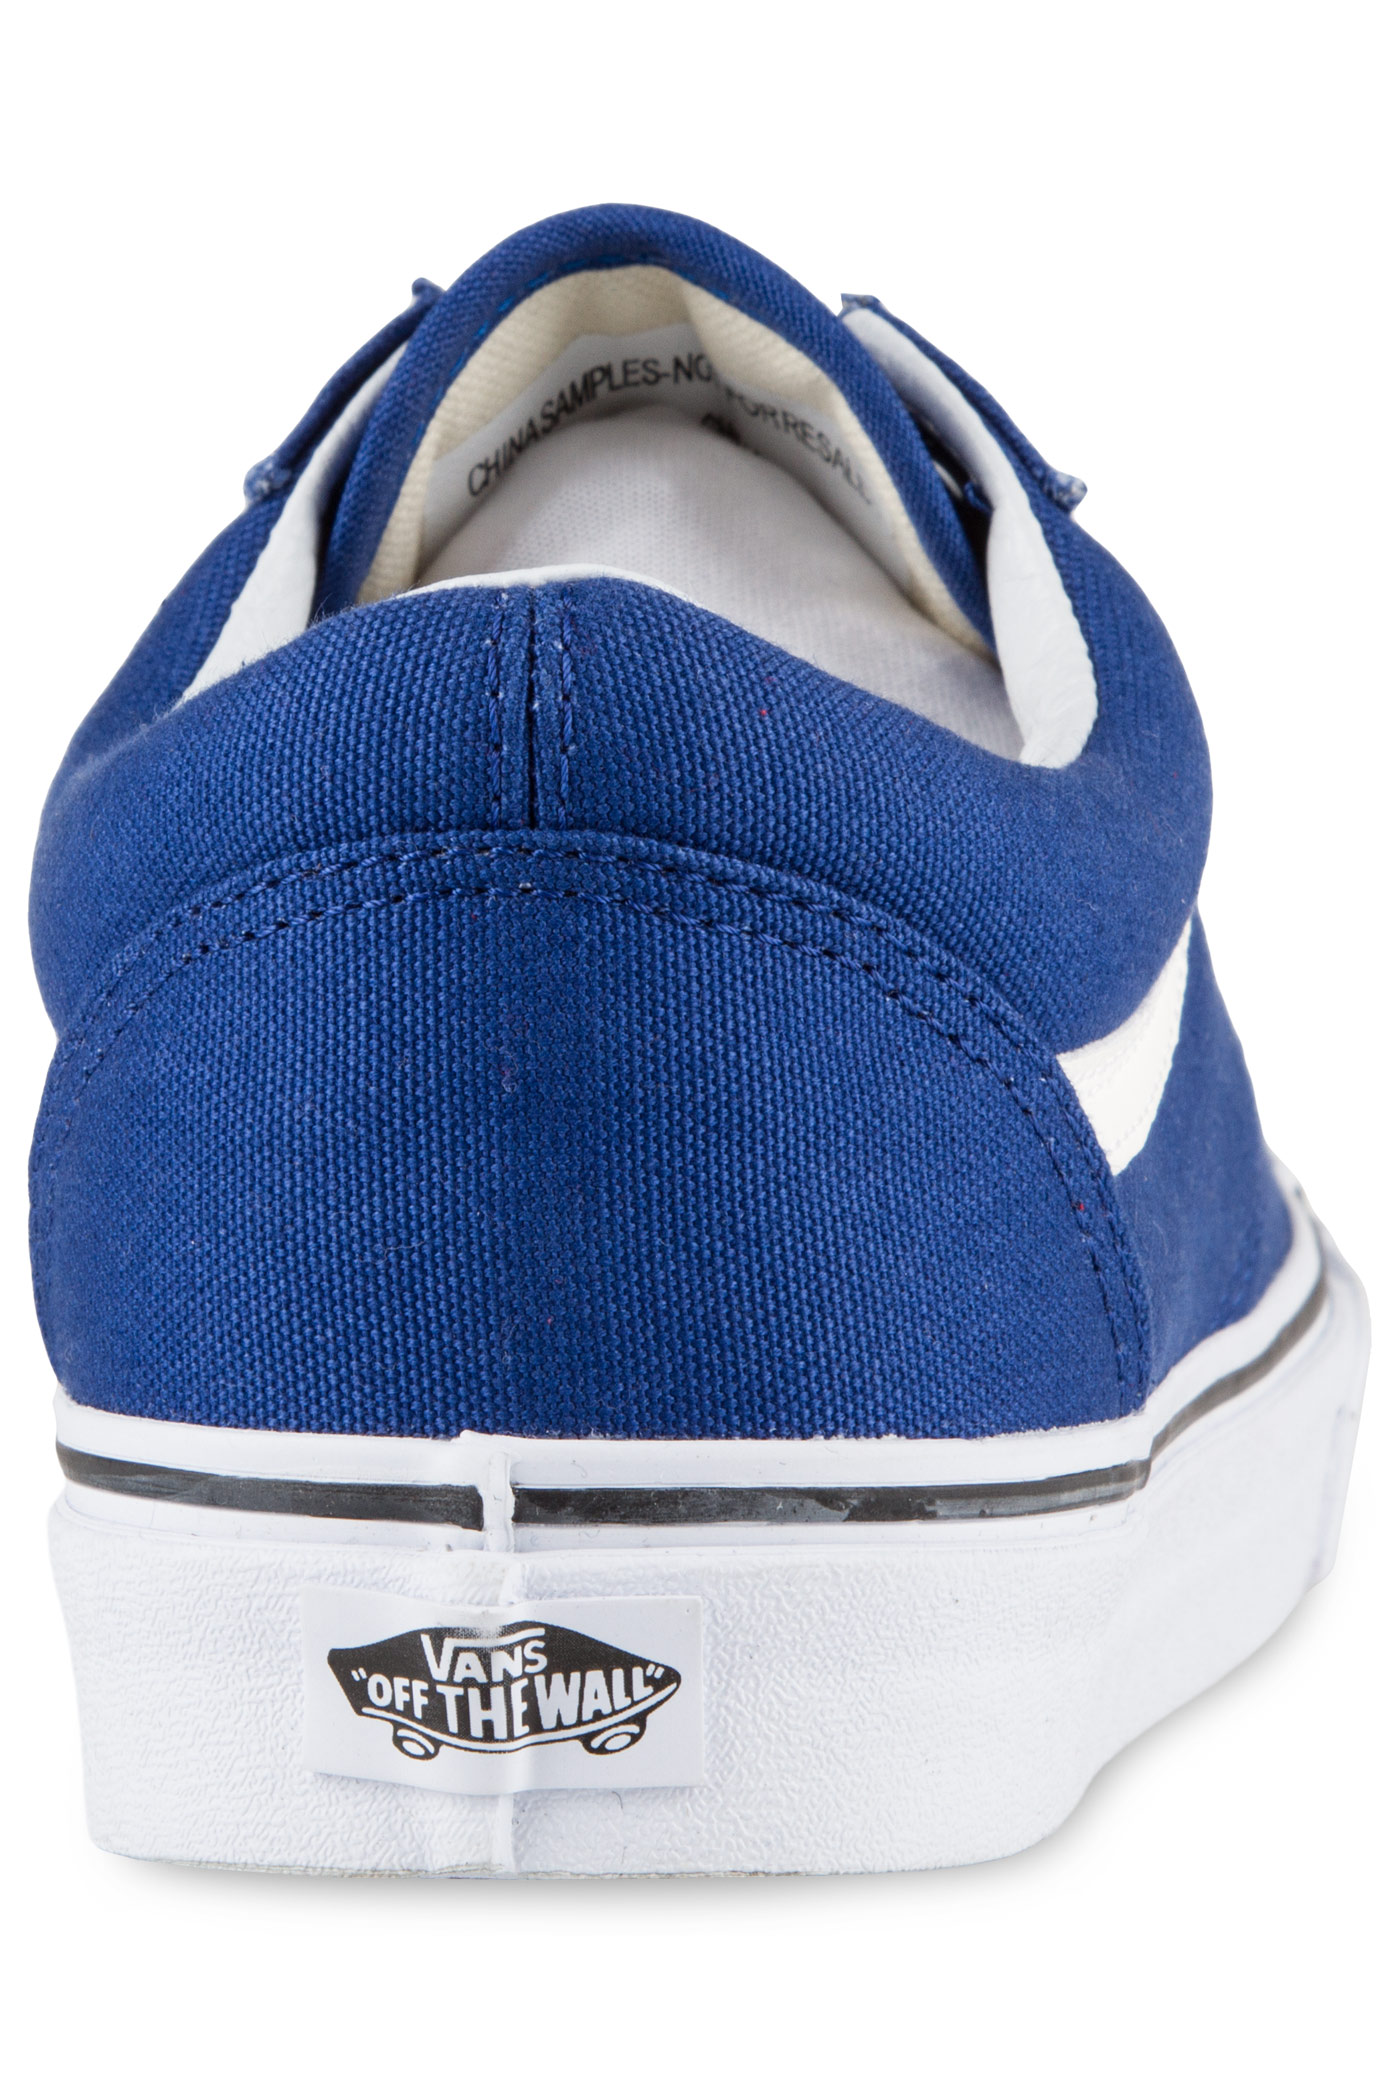 vans old skool canvas shoe true blue buy at skatedeluxe. Black Bedroom Furniture Sets. Home Design Ideas